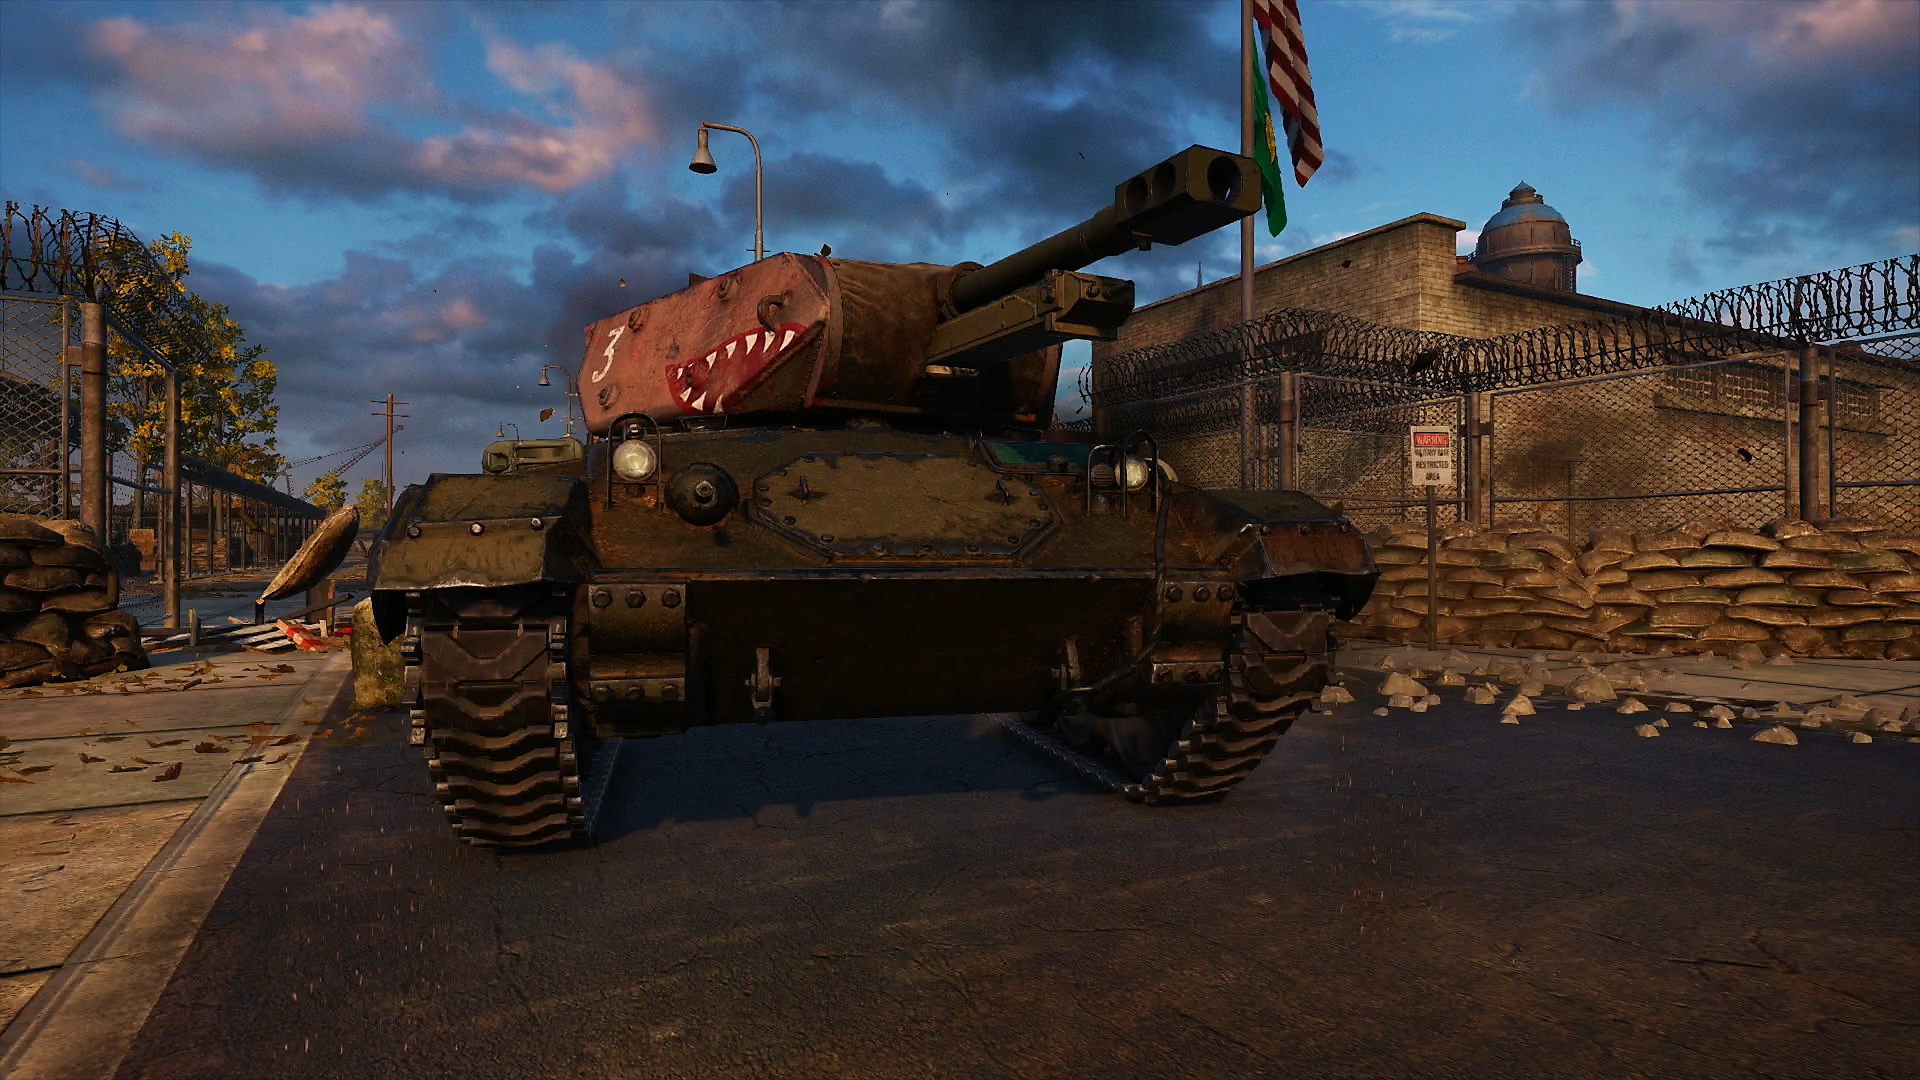 World of Tanks - captura de pantalla de una partida